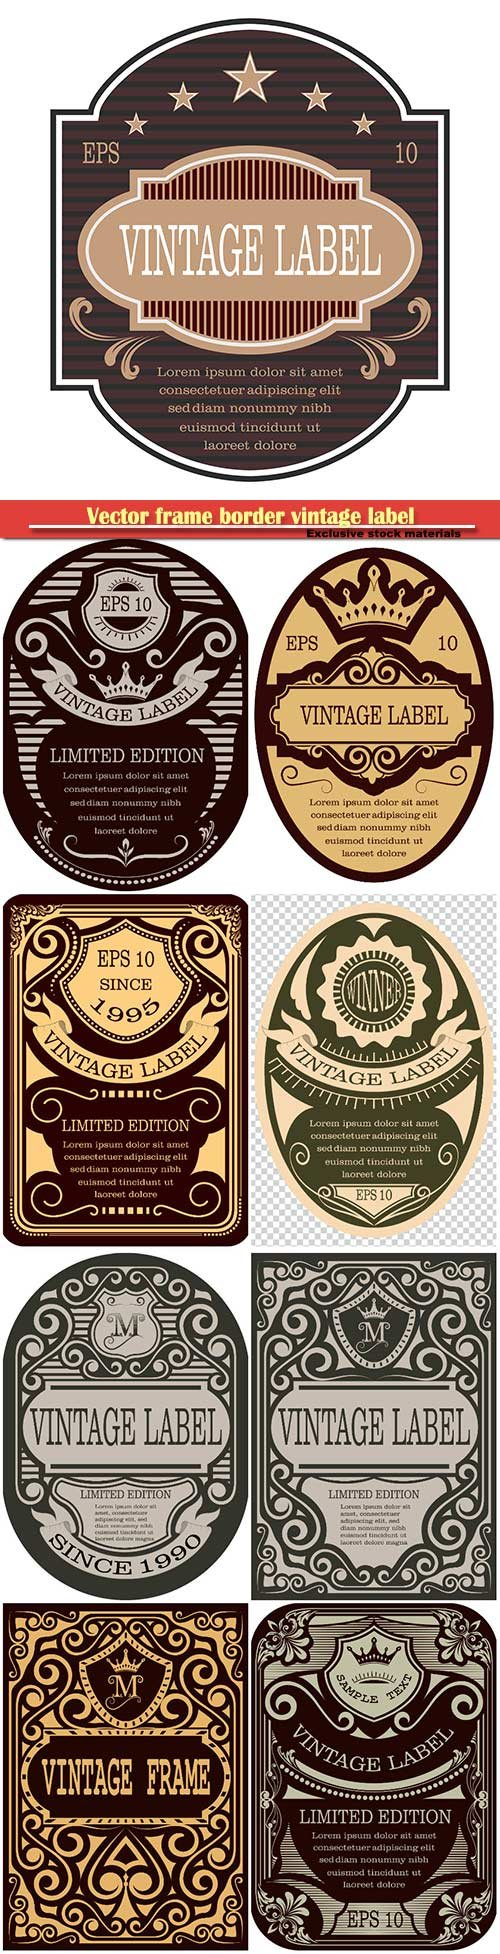 Vector frame border vintage label or poster retro design